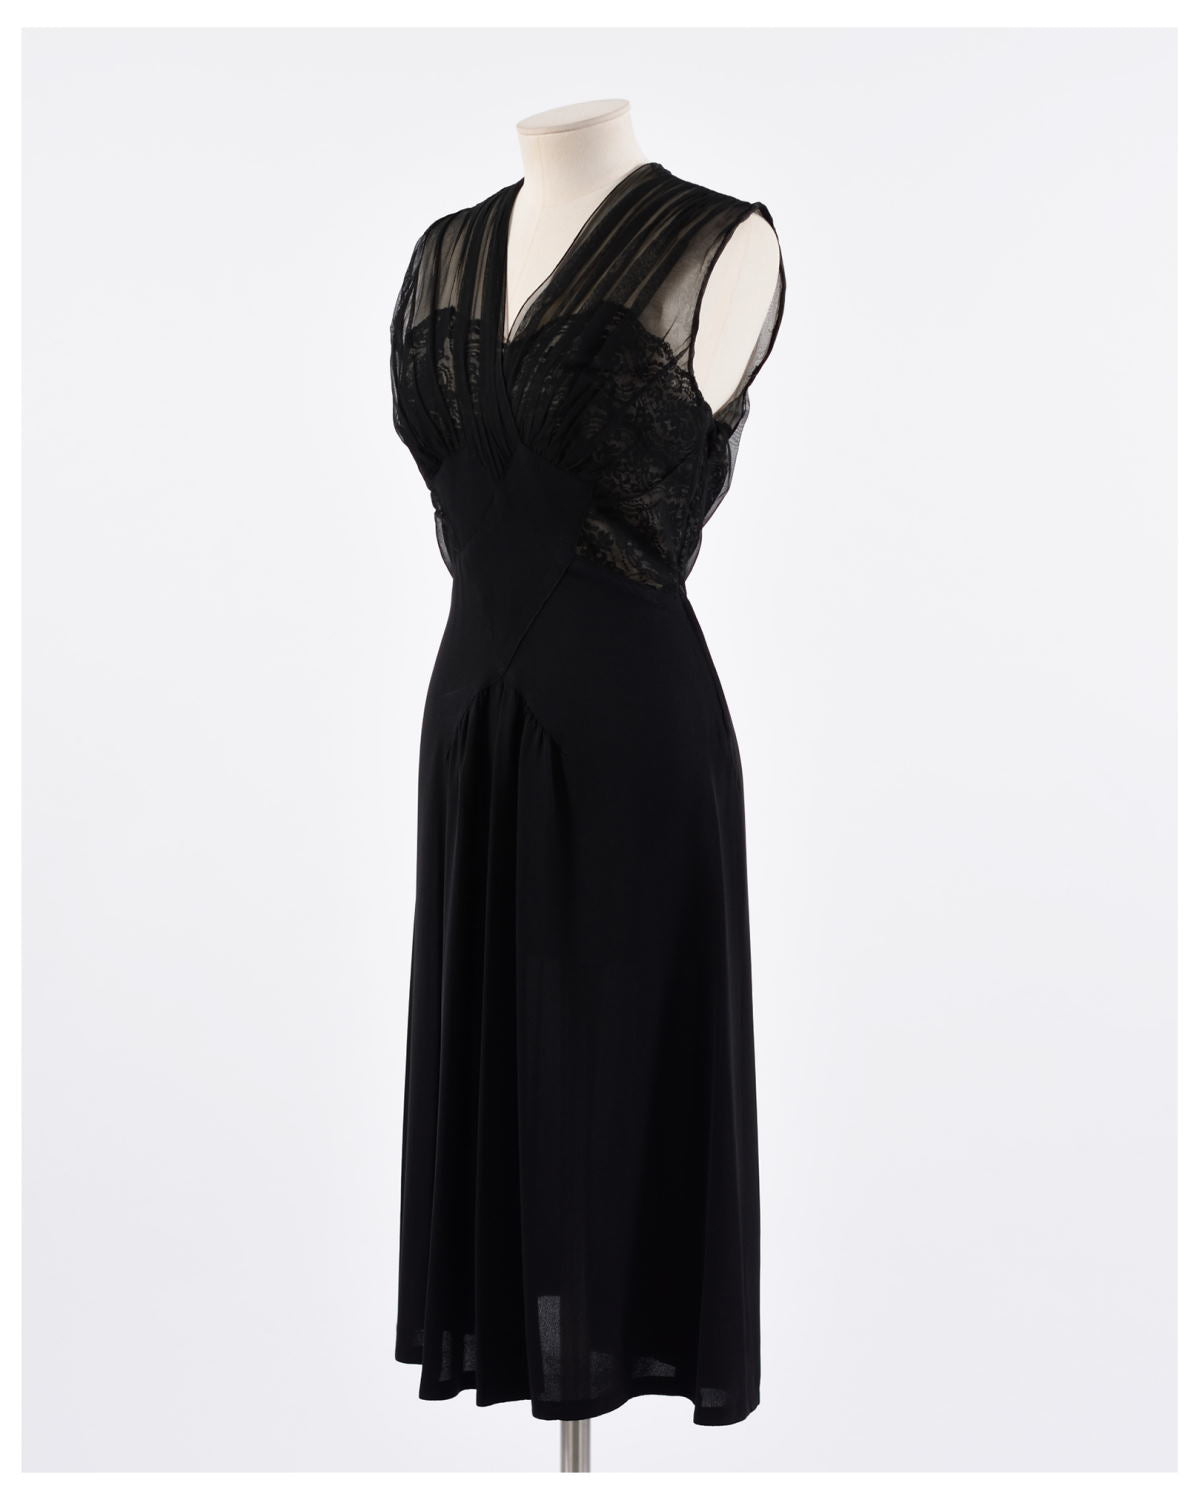 1940s Cocktail Dress